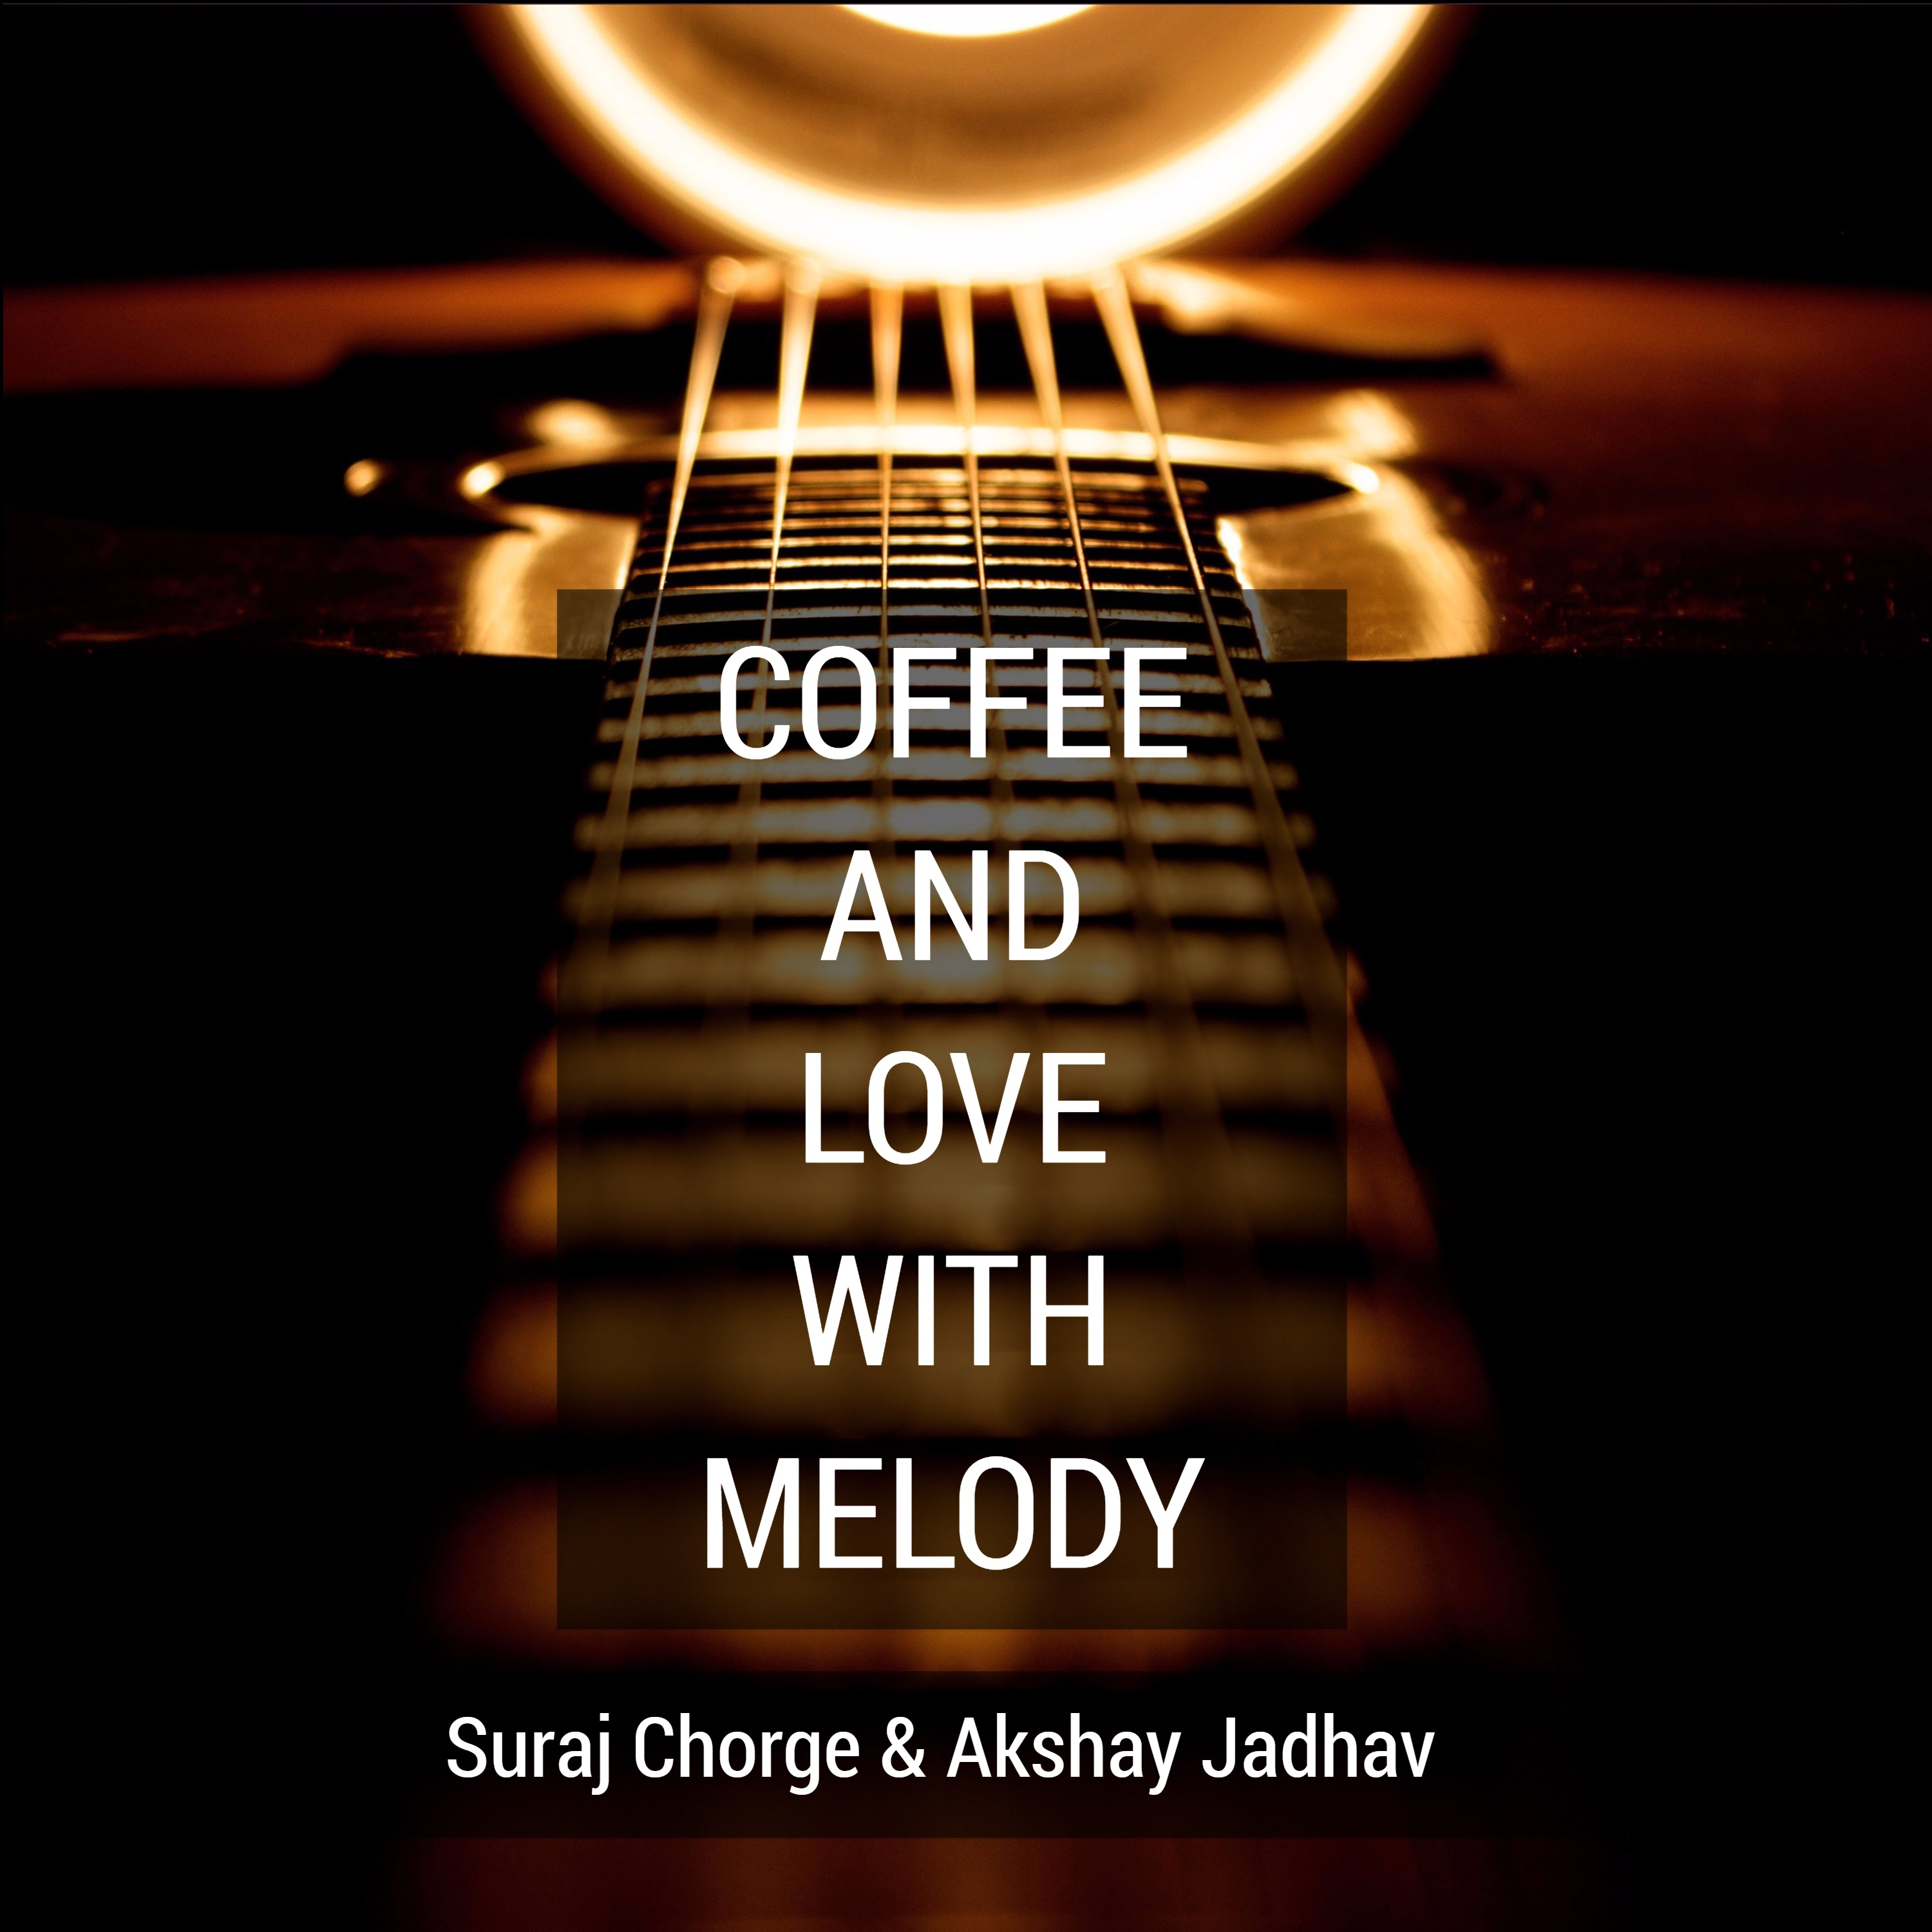 Coffee and Love with Melody - Single